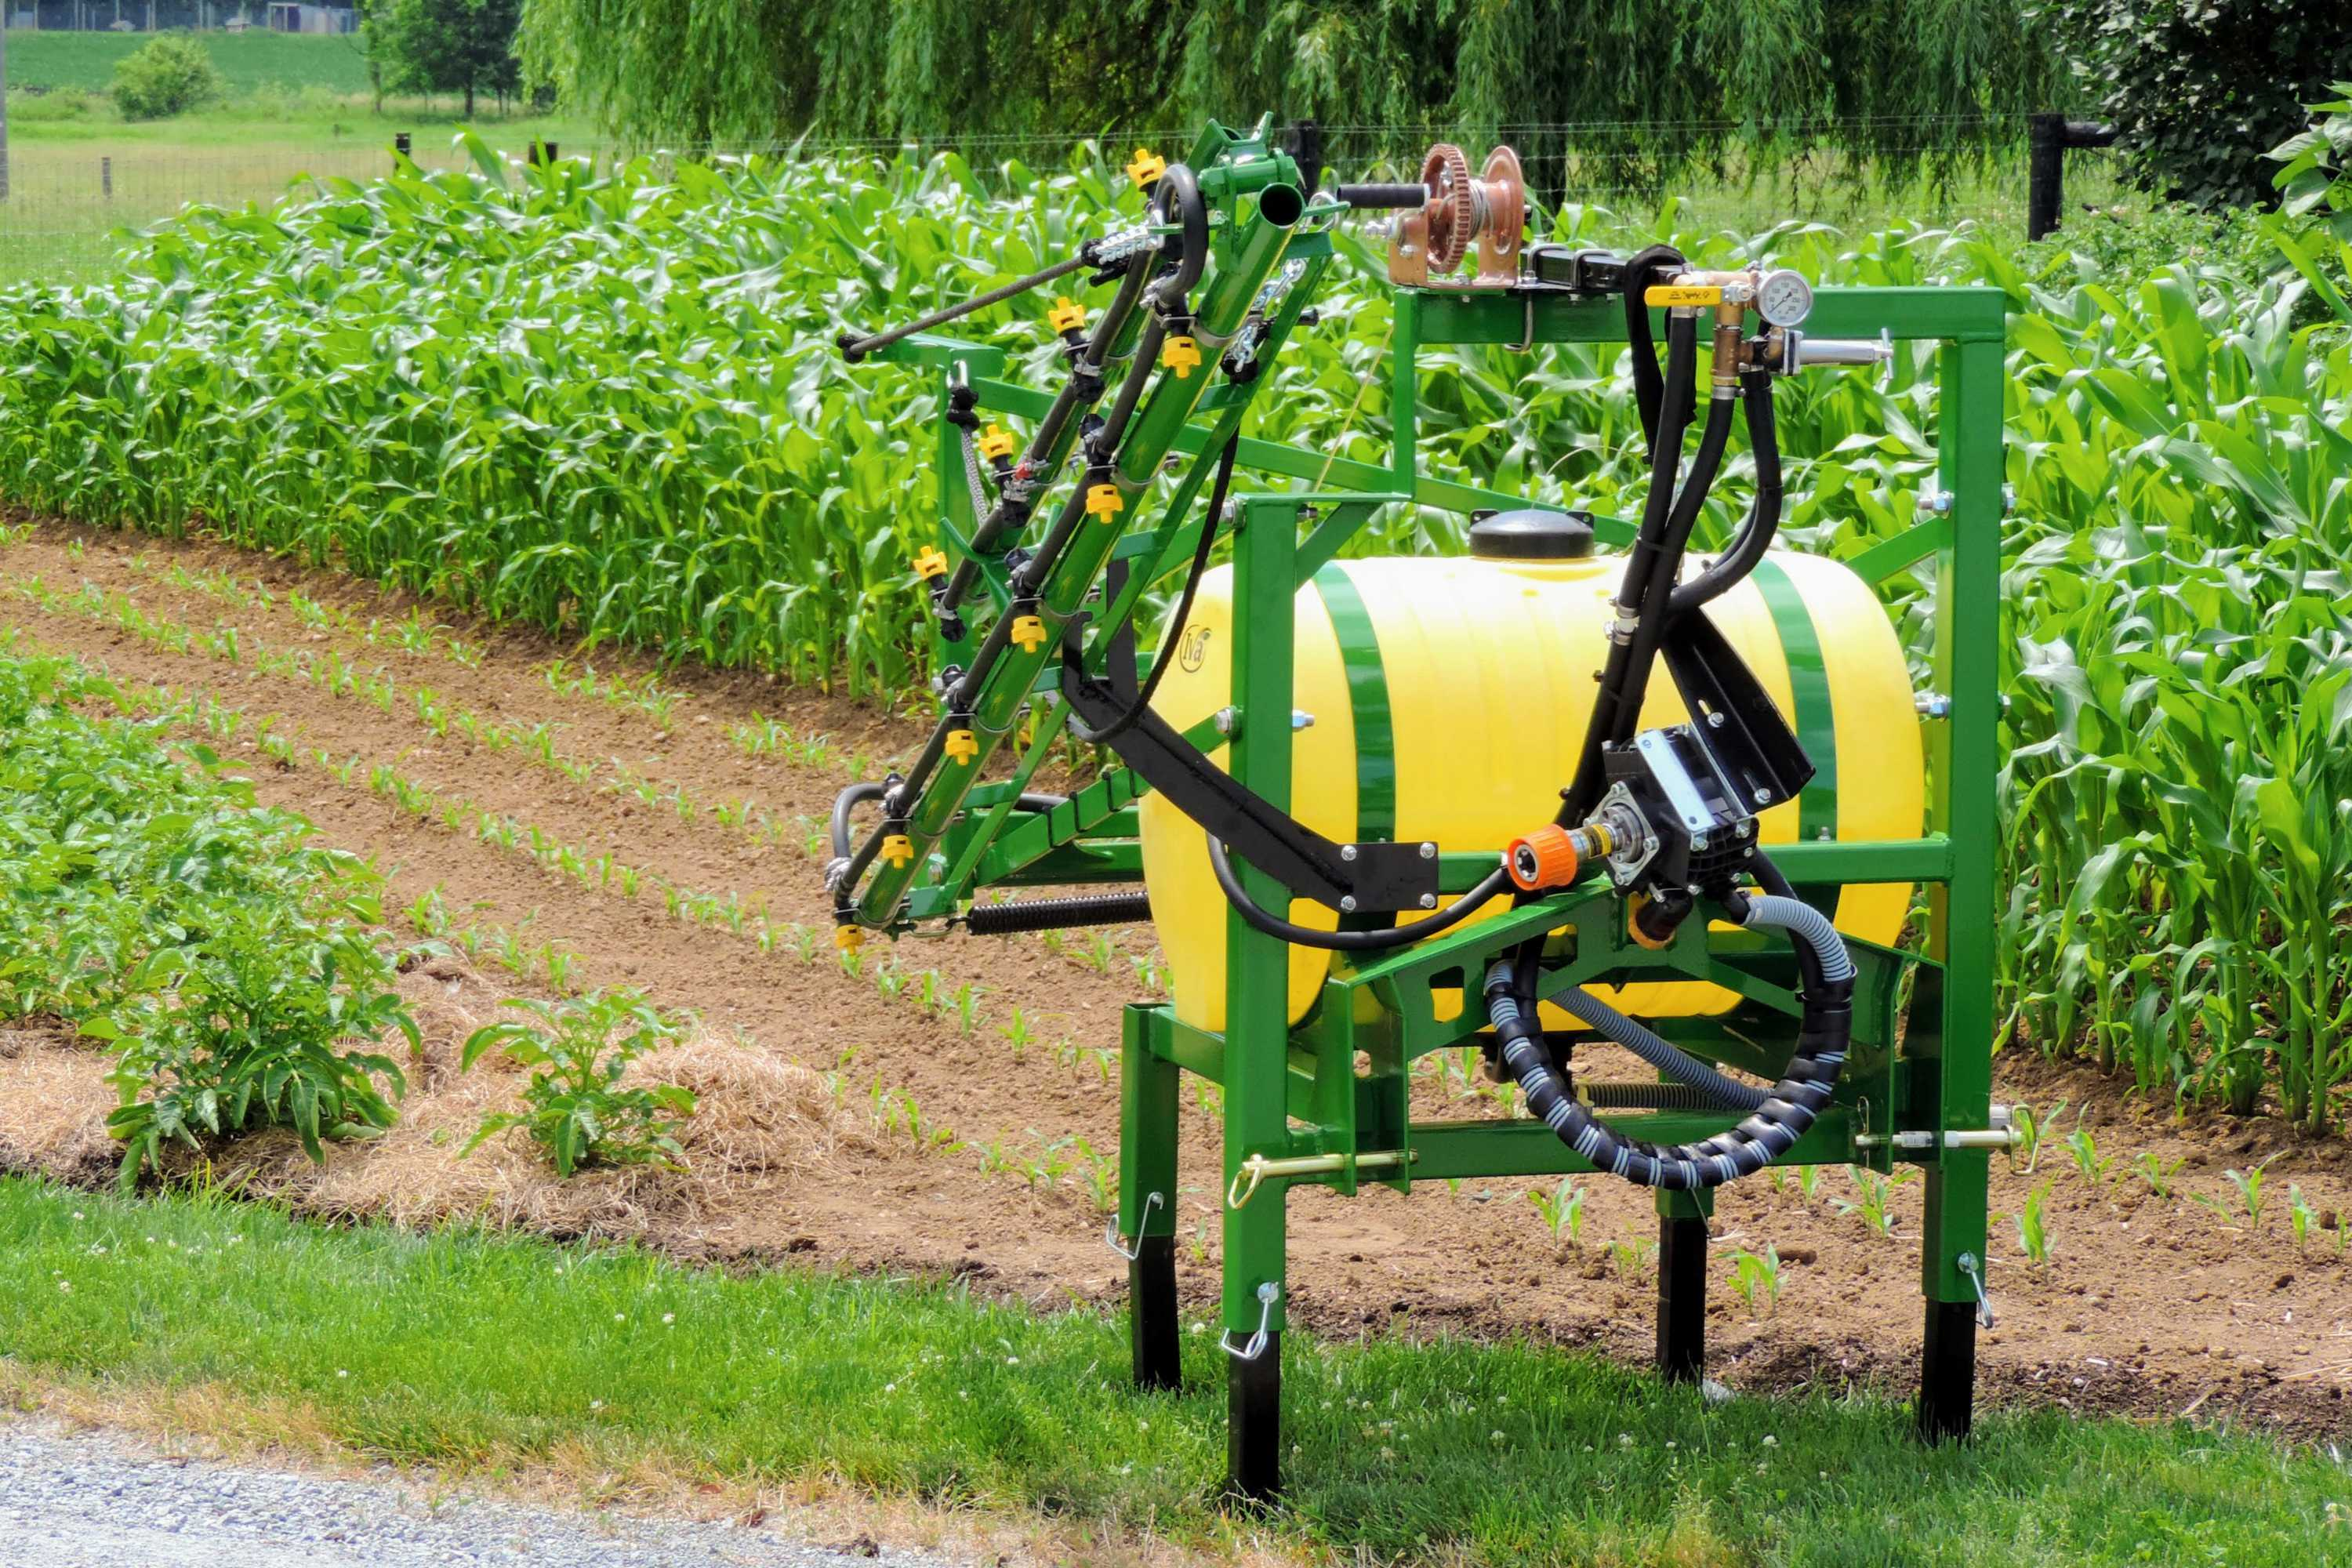 55 gallon 3-point hitch sprayer with 15' single sided boom